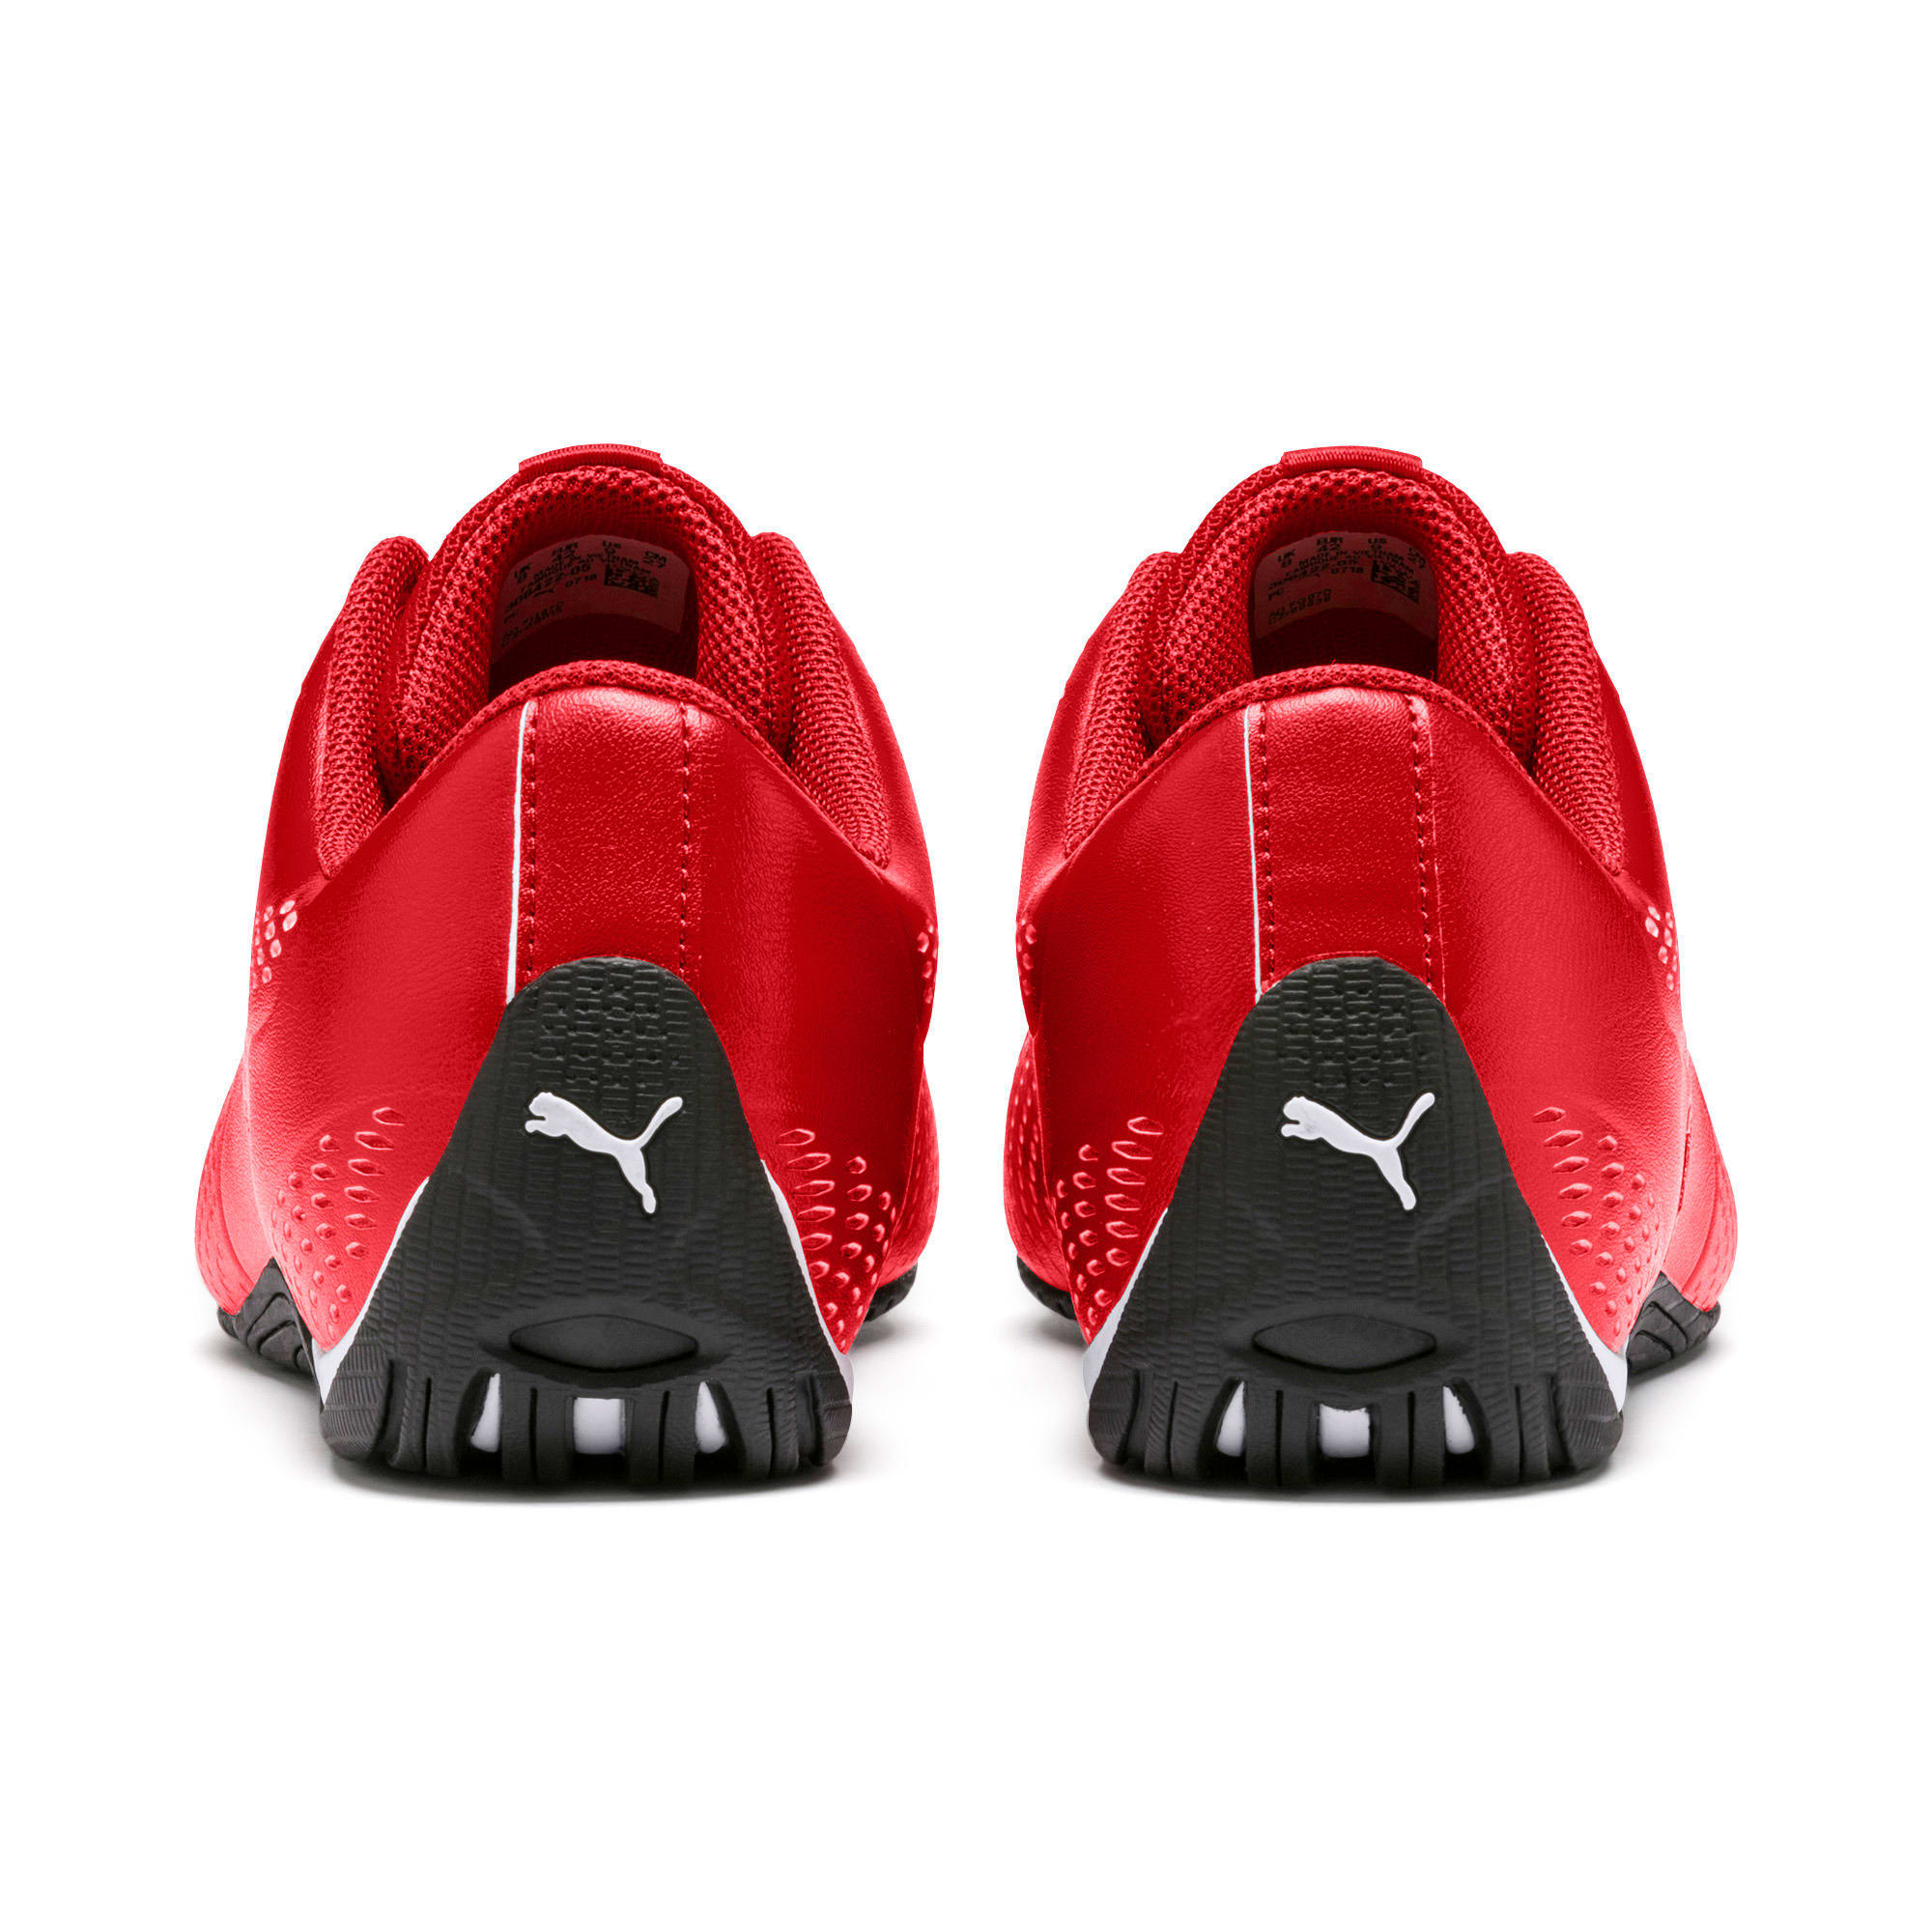 Thumbnail 4 of Ferrari Drift Cat 5 Ultra II Trainers, Rosso Corsa-Puma White, medium